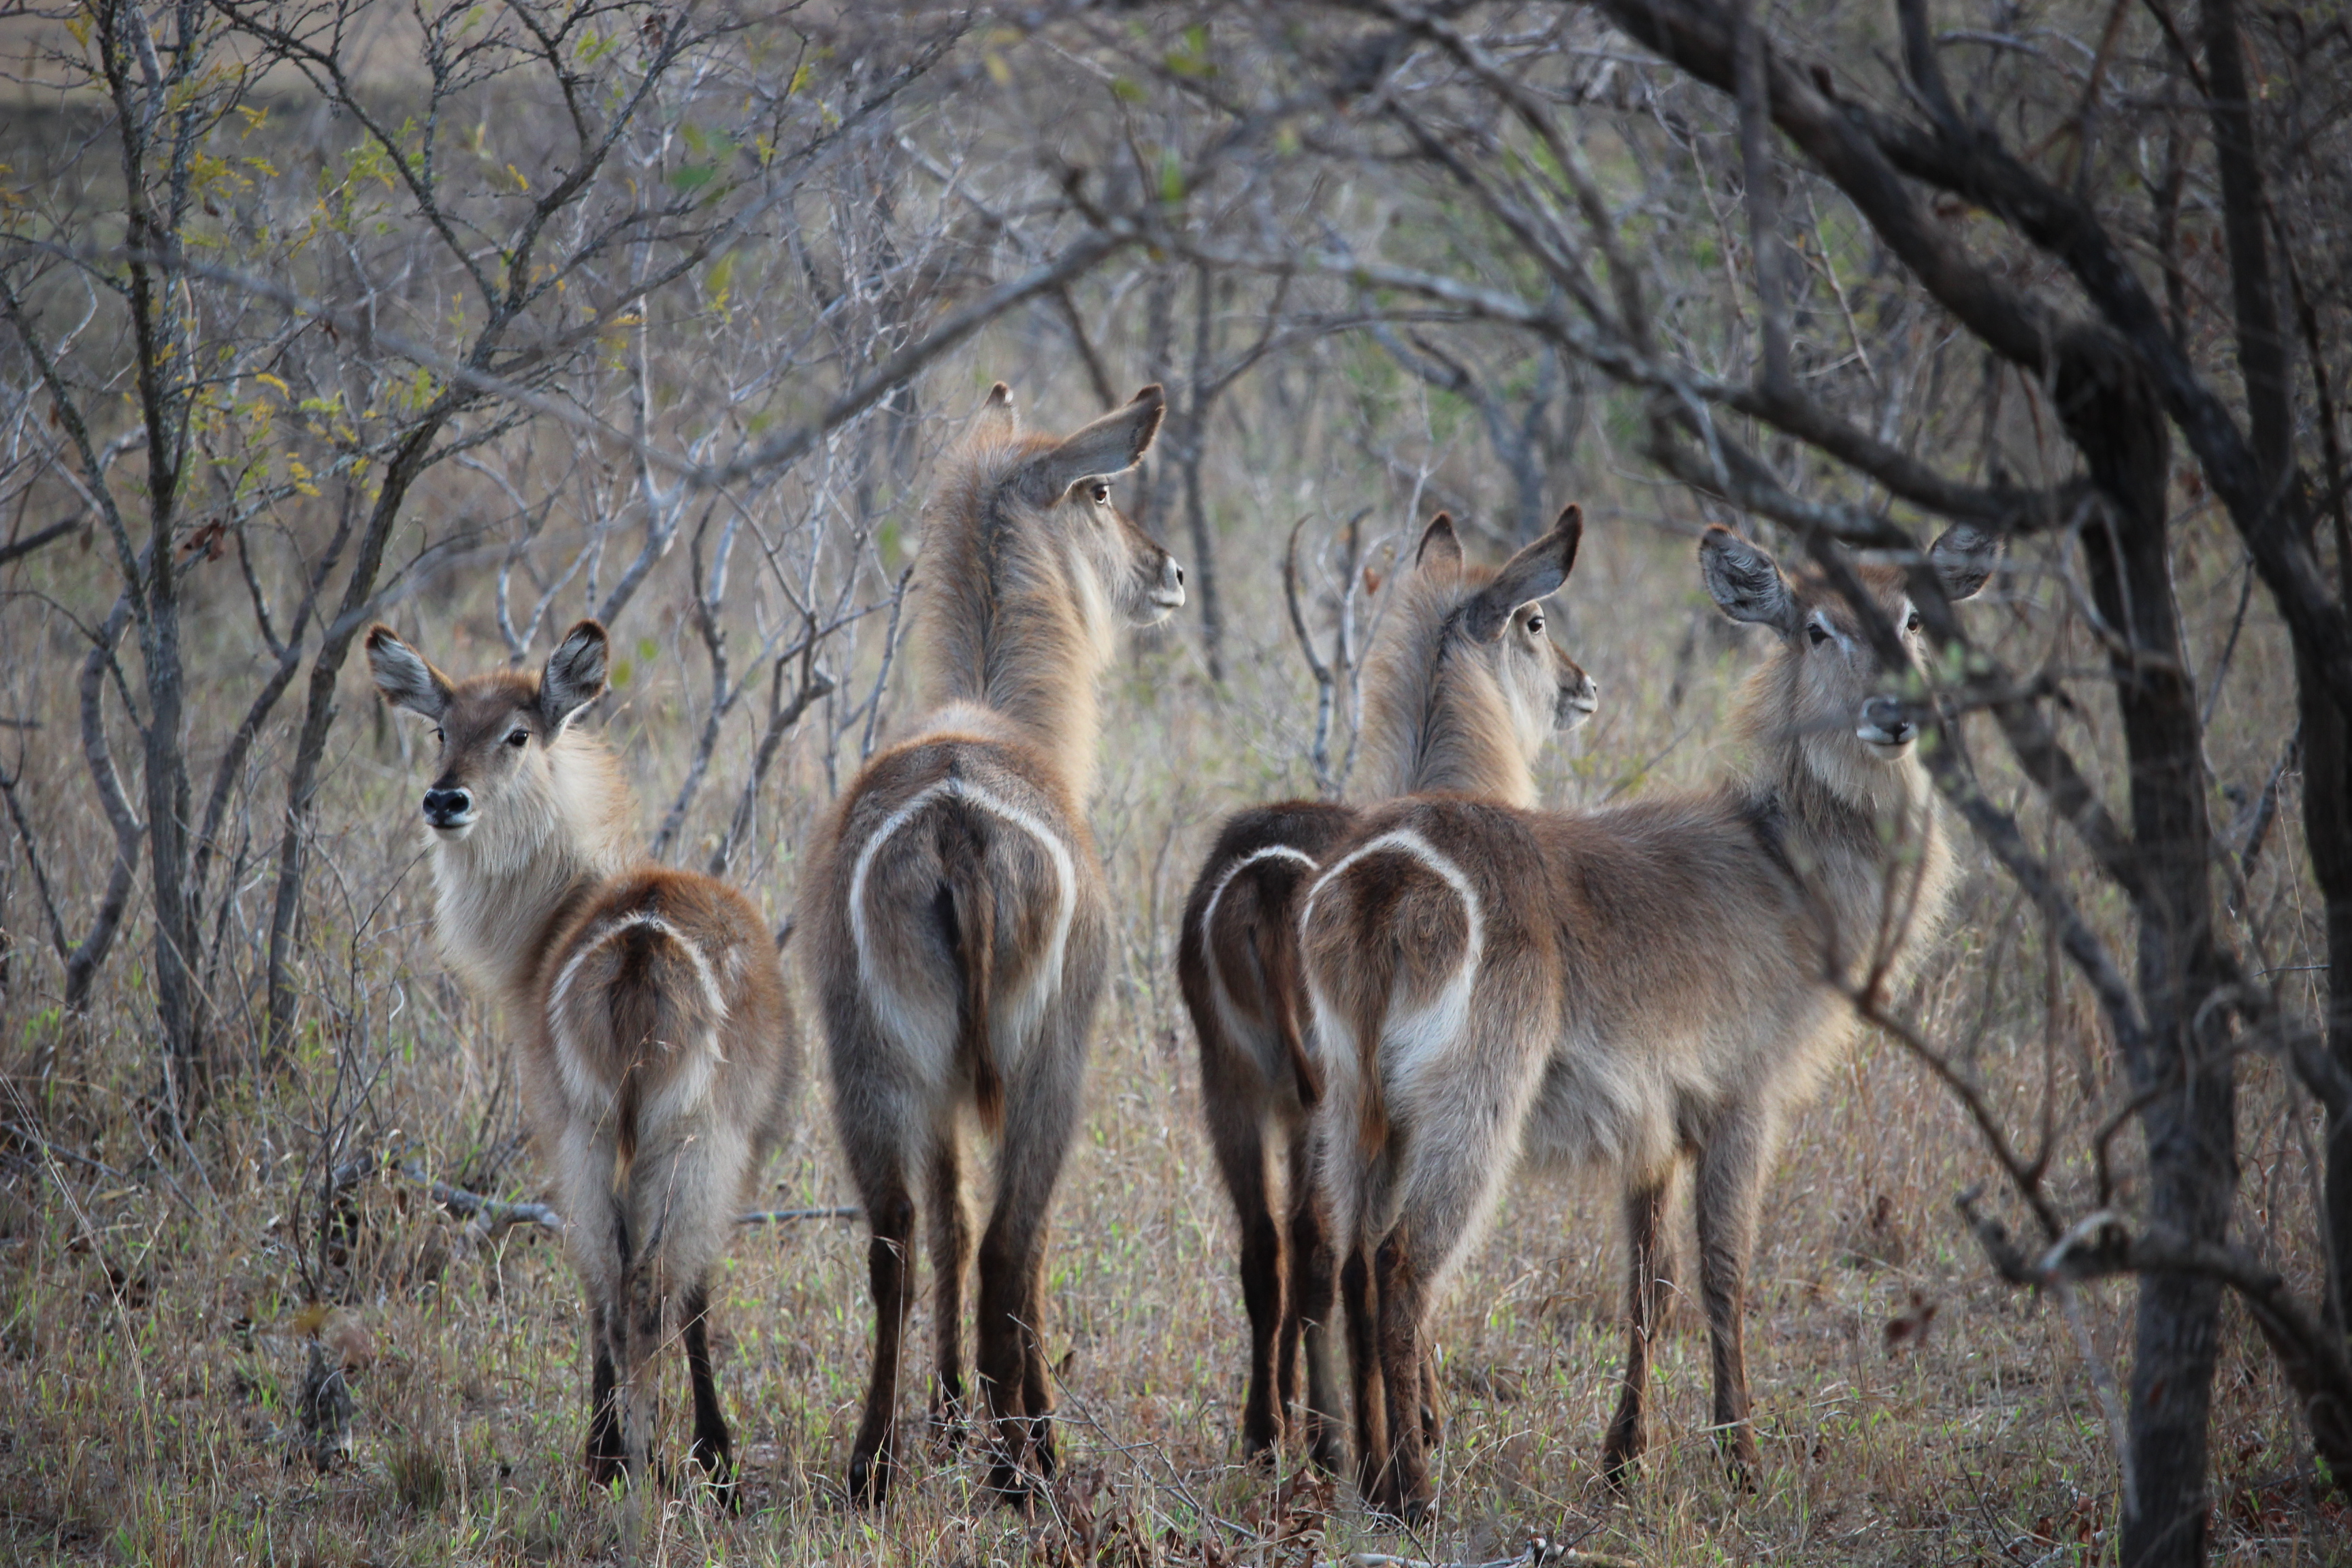 waterbucks-at-dawn_21502200101_o